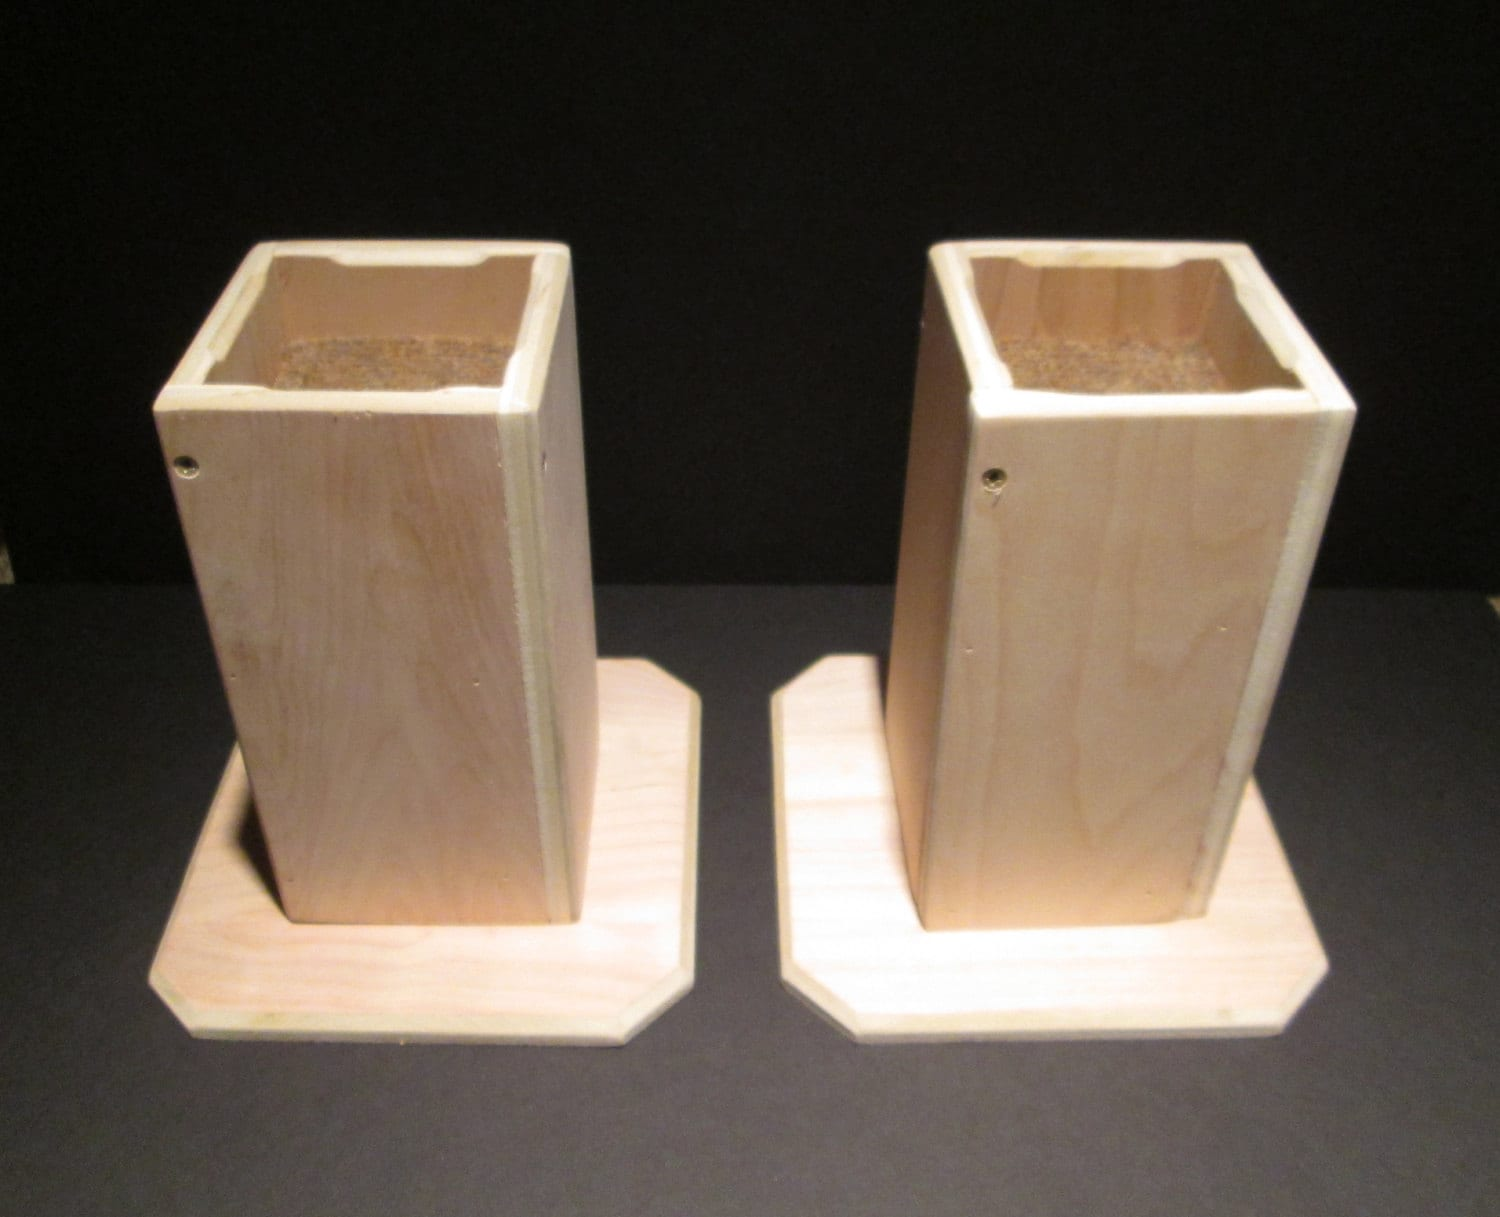 furniture risers 8 inch all wood construction by odyssey359